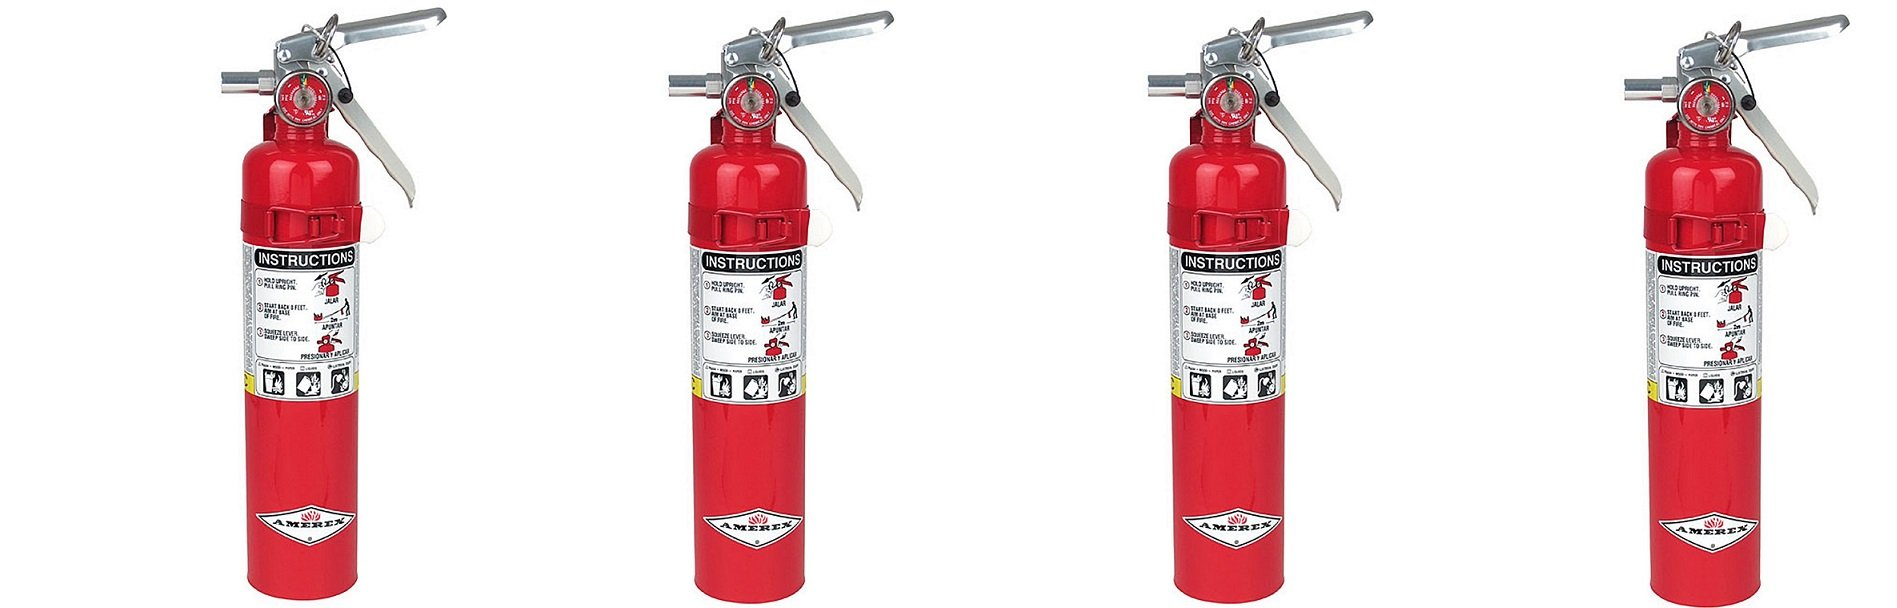 Amerex B417, 2.5lb ABC Dry Chemical Class A B C Fire Extinguisher, with Wall Bracket (4-PACK) by Amerex (Image #1)